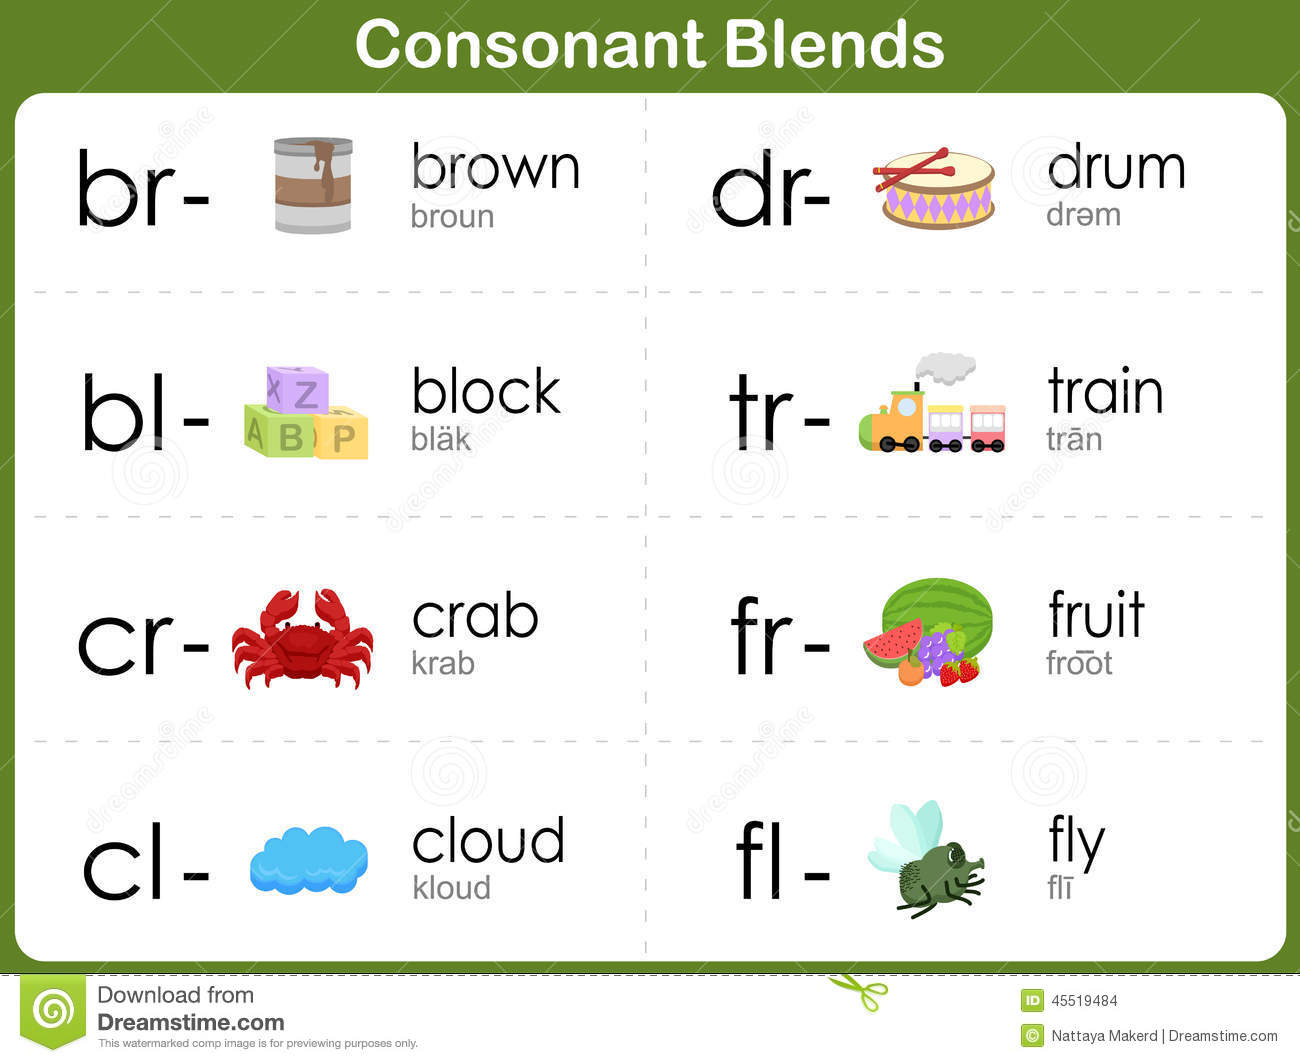 Consonant Blends Worksheet For Kids Stock Vector - Image: 45519484